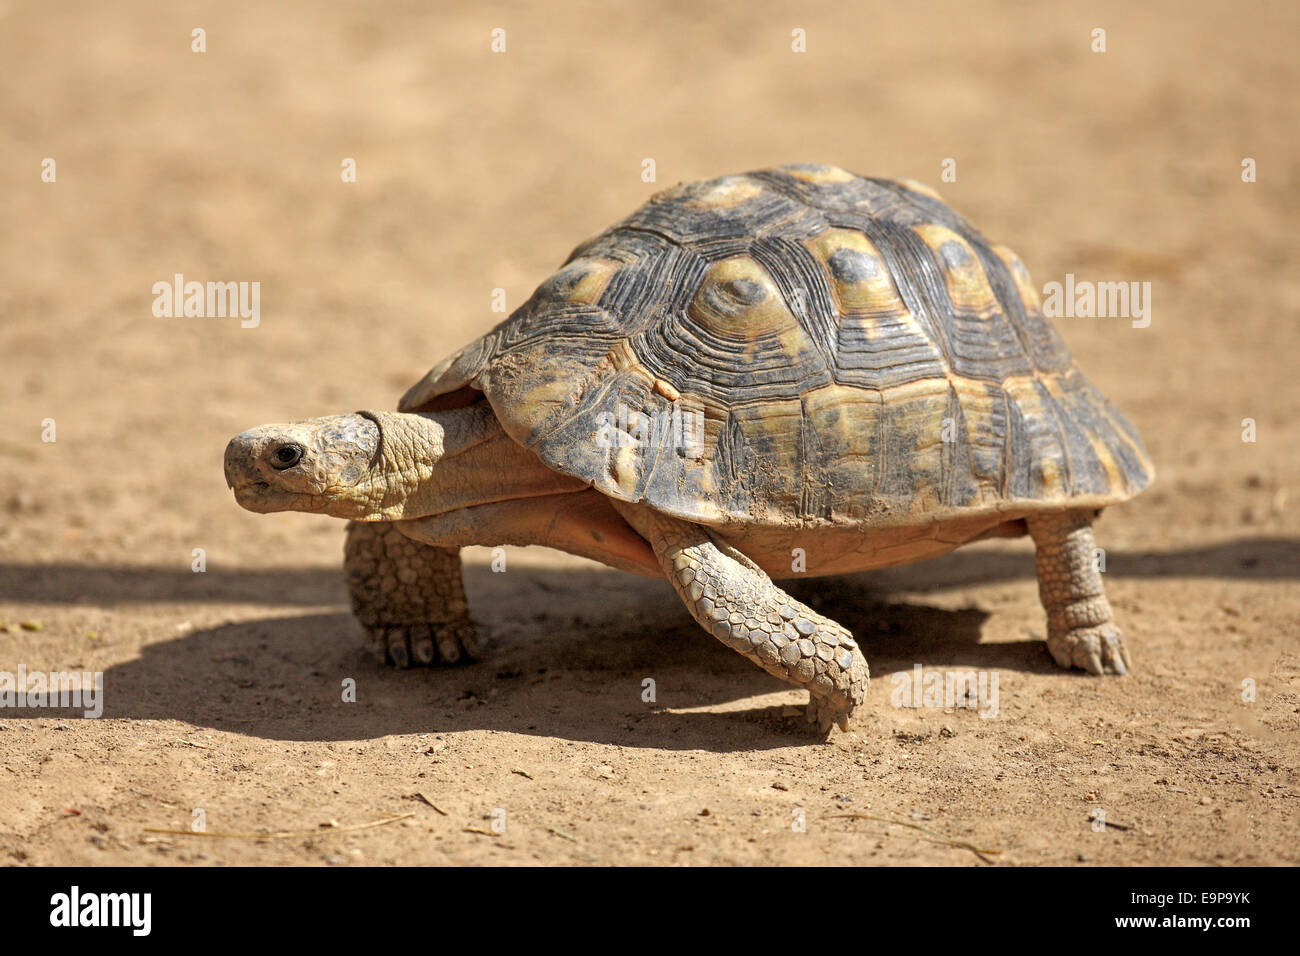 Angulate Tortoise (Chersina angulata) adult, walking on dry ground, Addo Elephant N.P., Eastern Cape, South Africa, - Stock Image